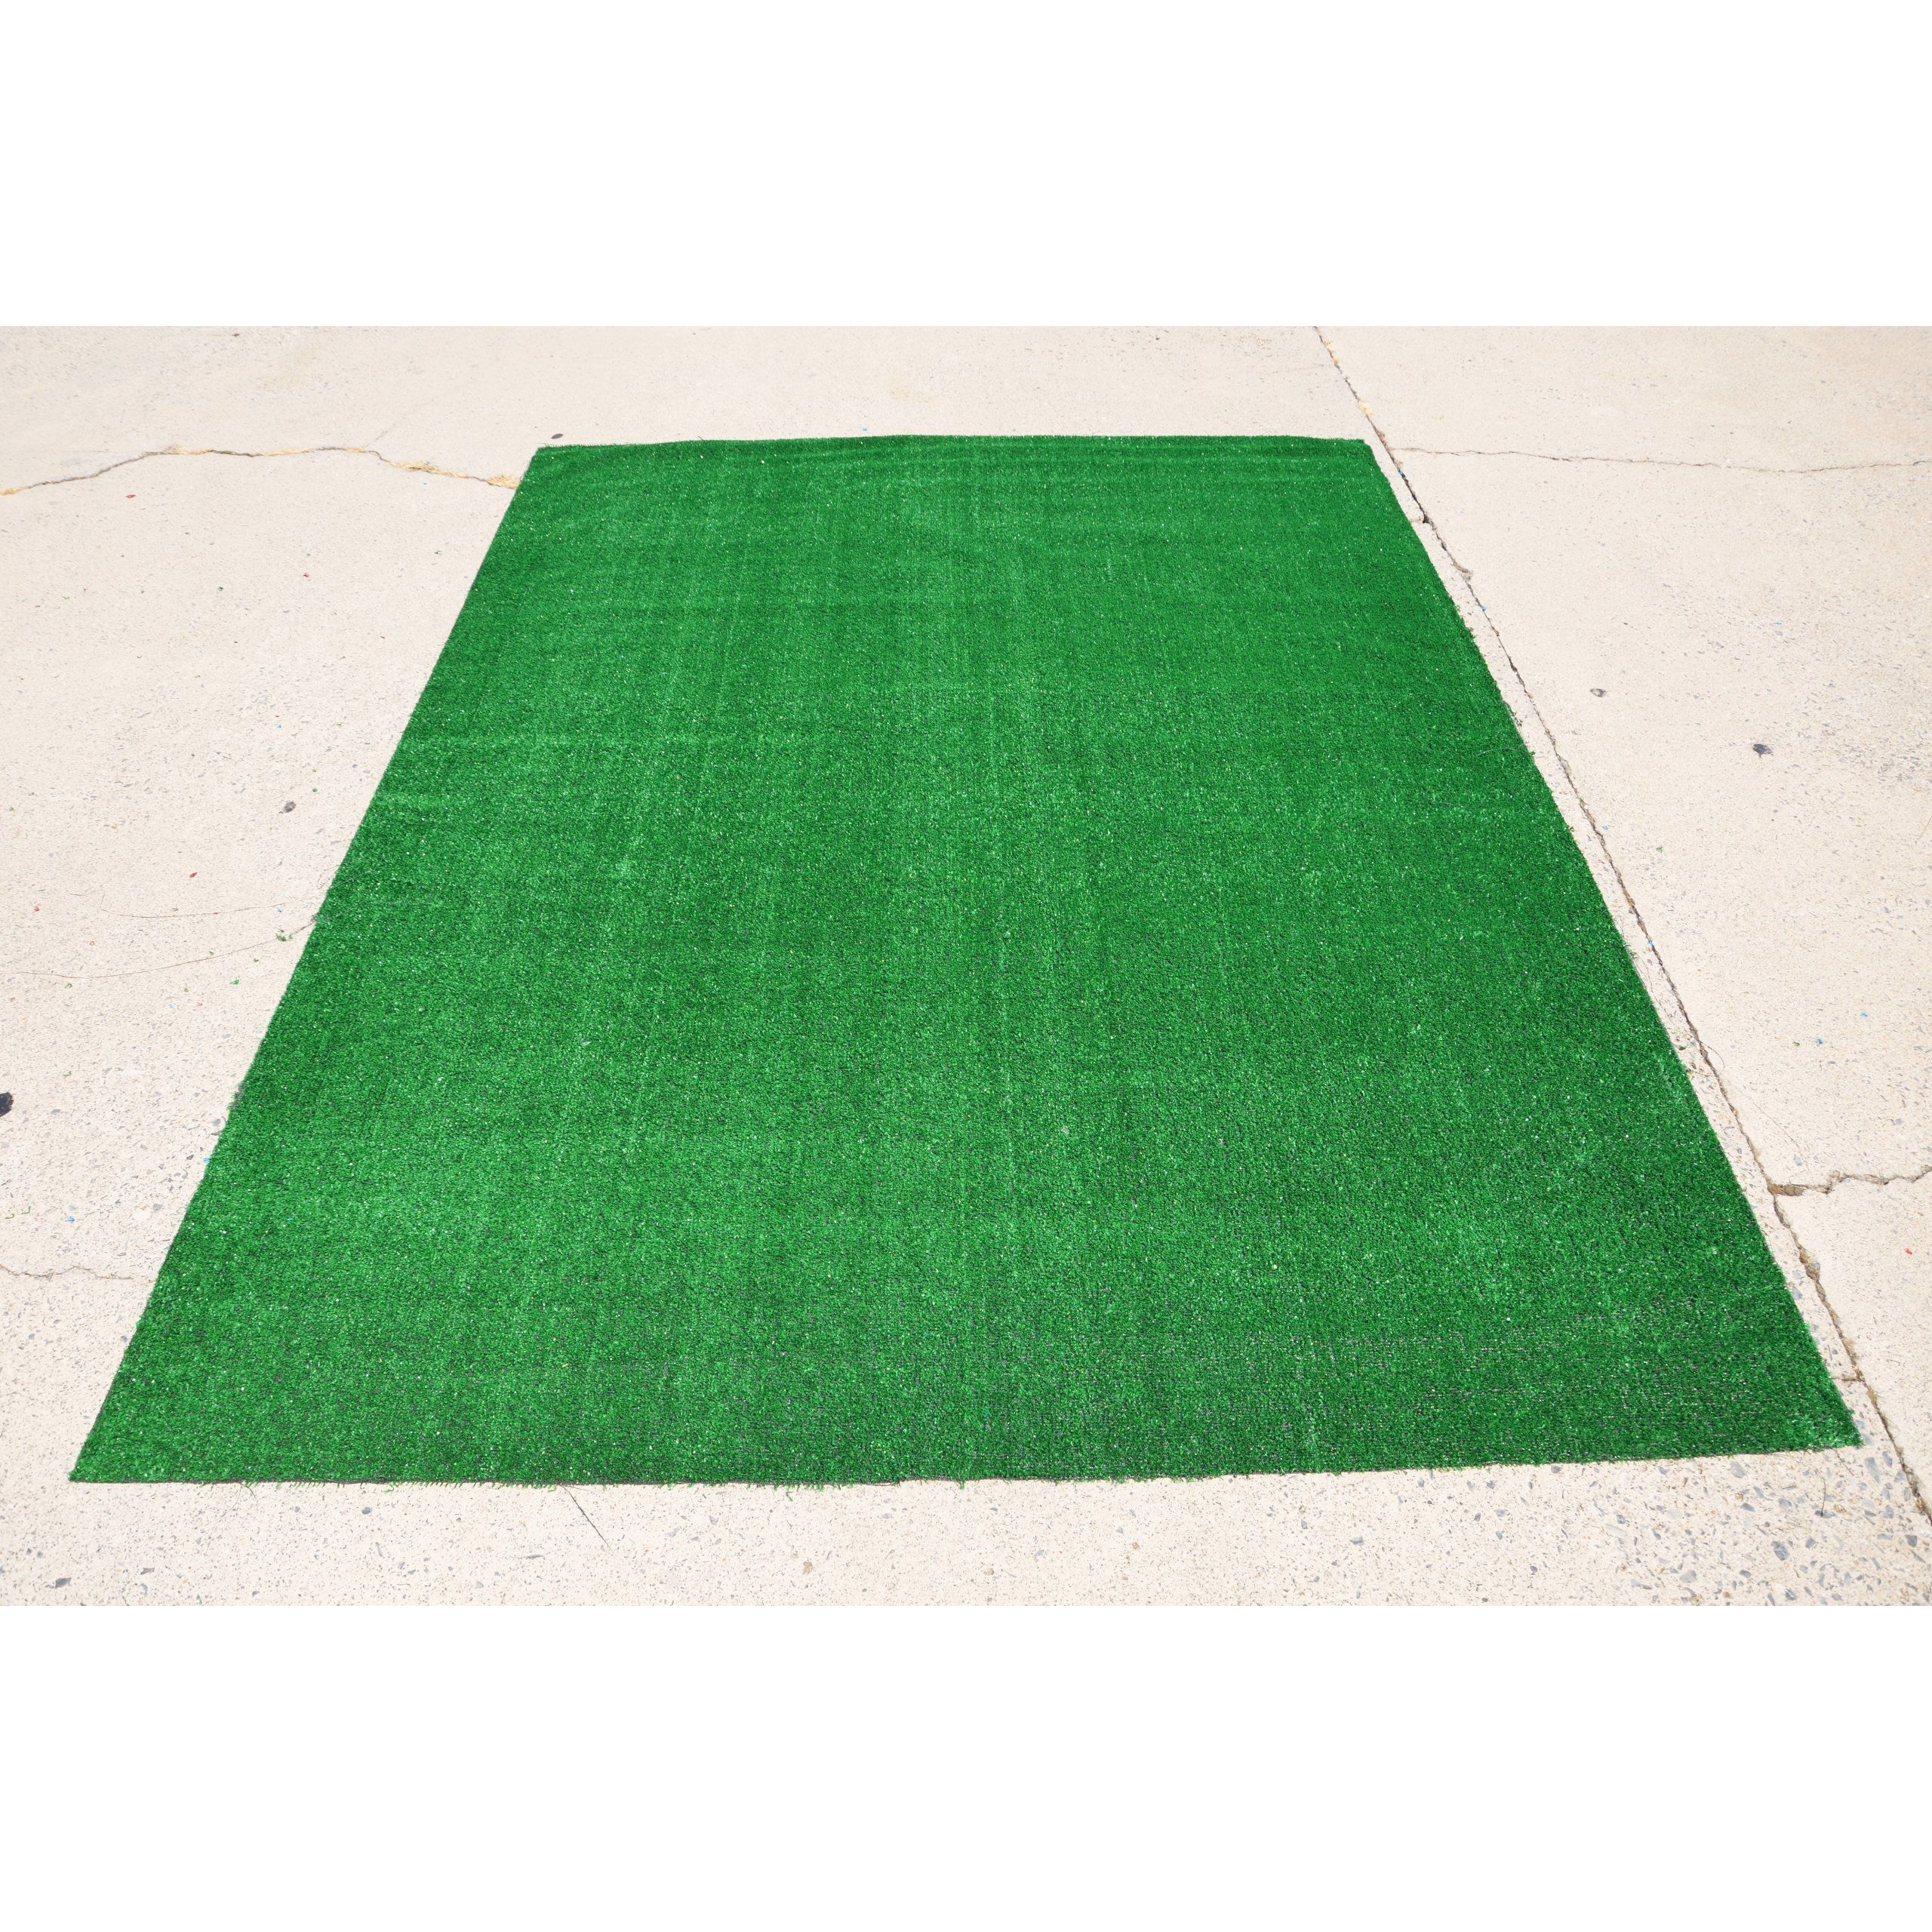 Dean Flooring pany Indoor Outdoor Green Artificial Grass Turf